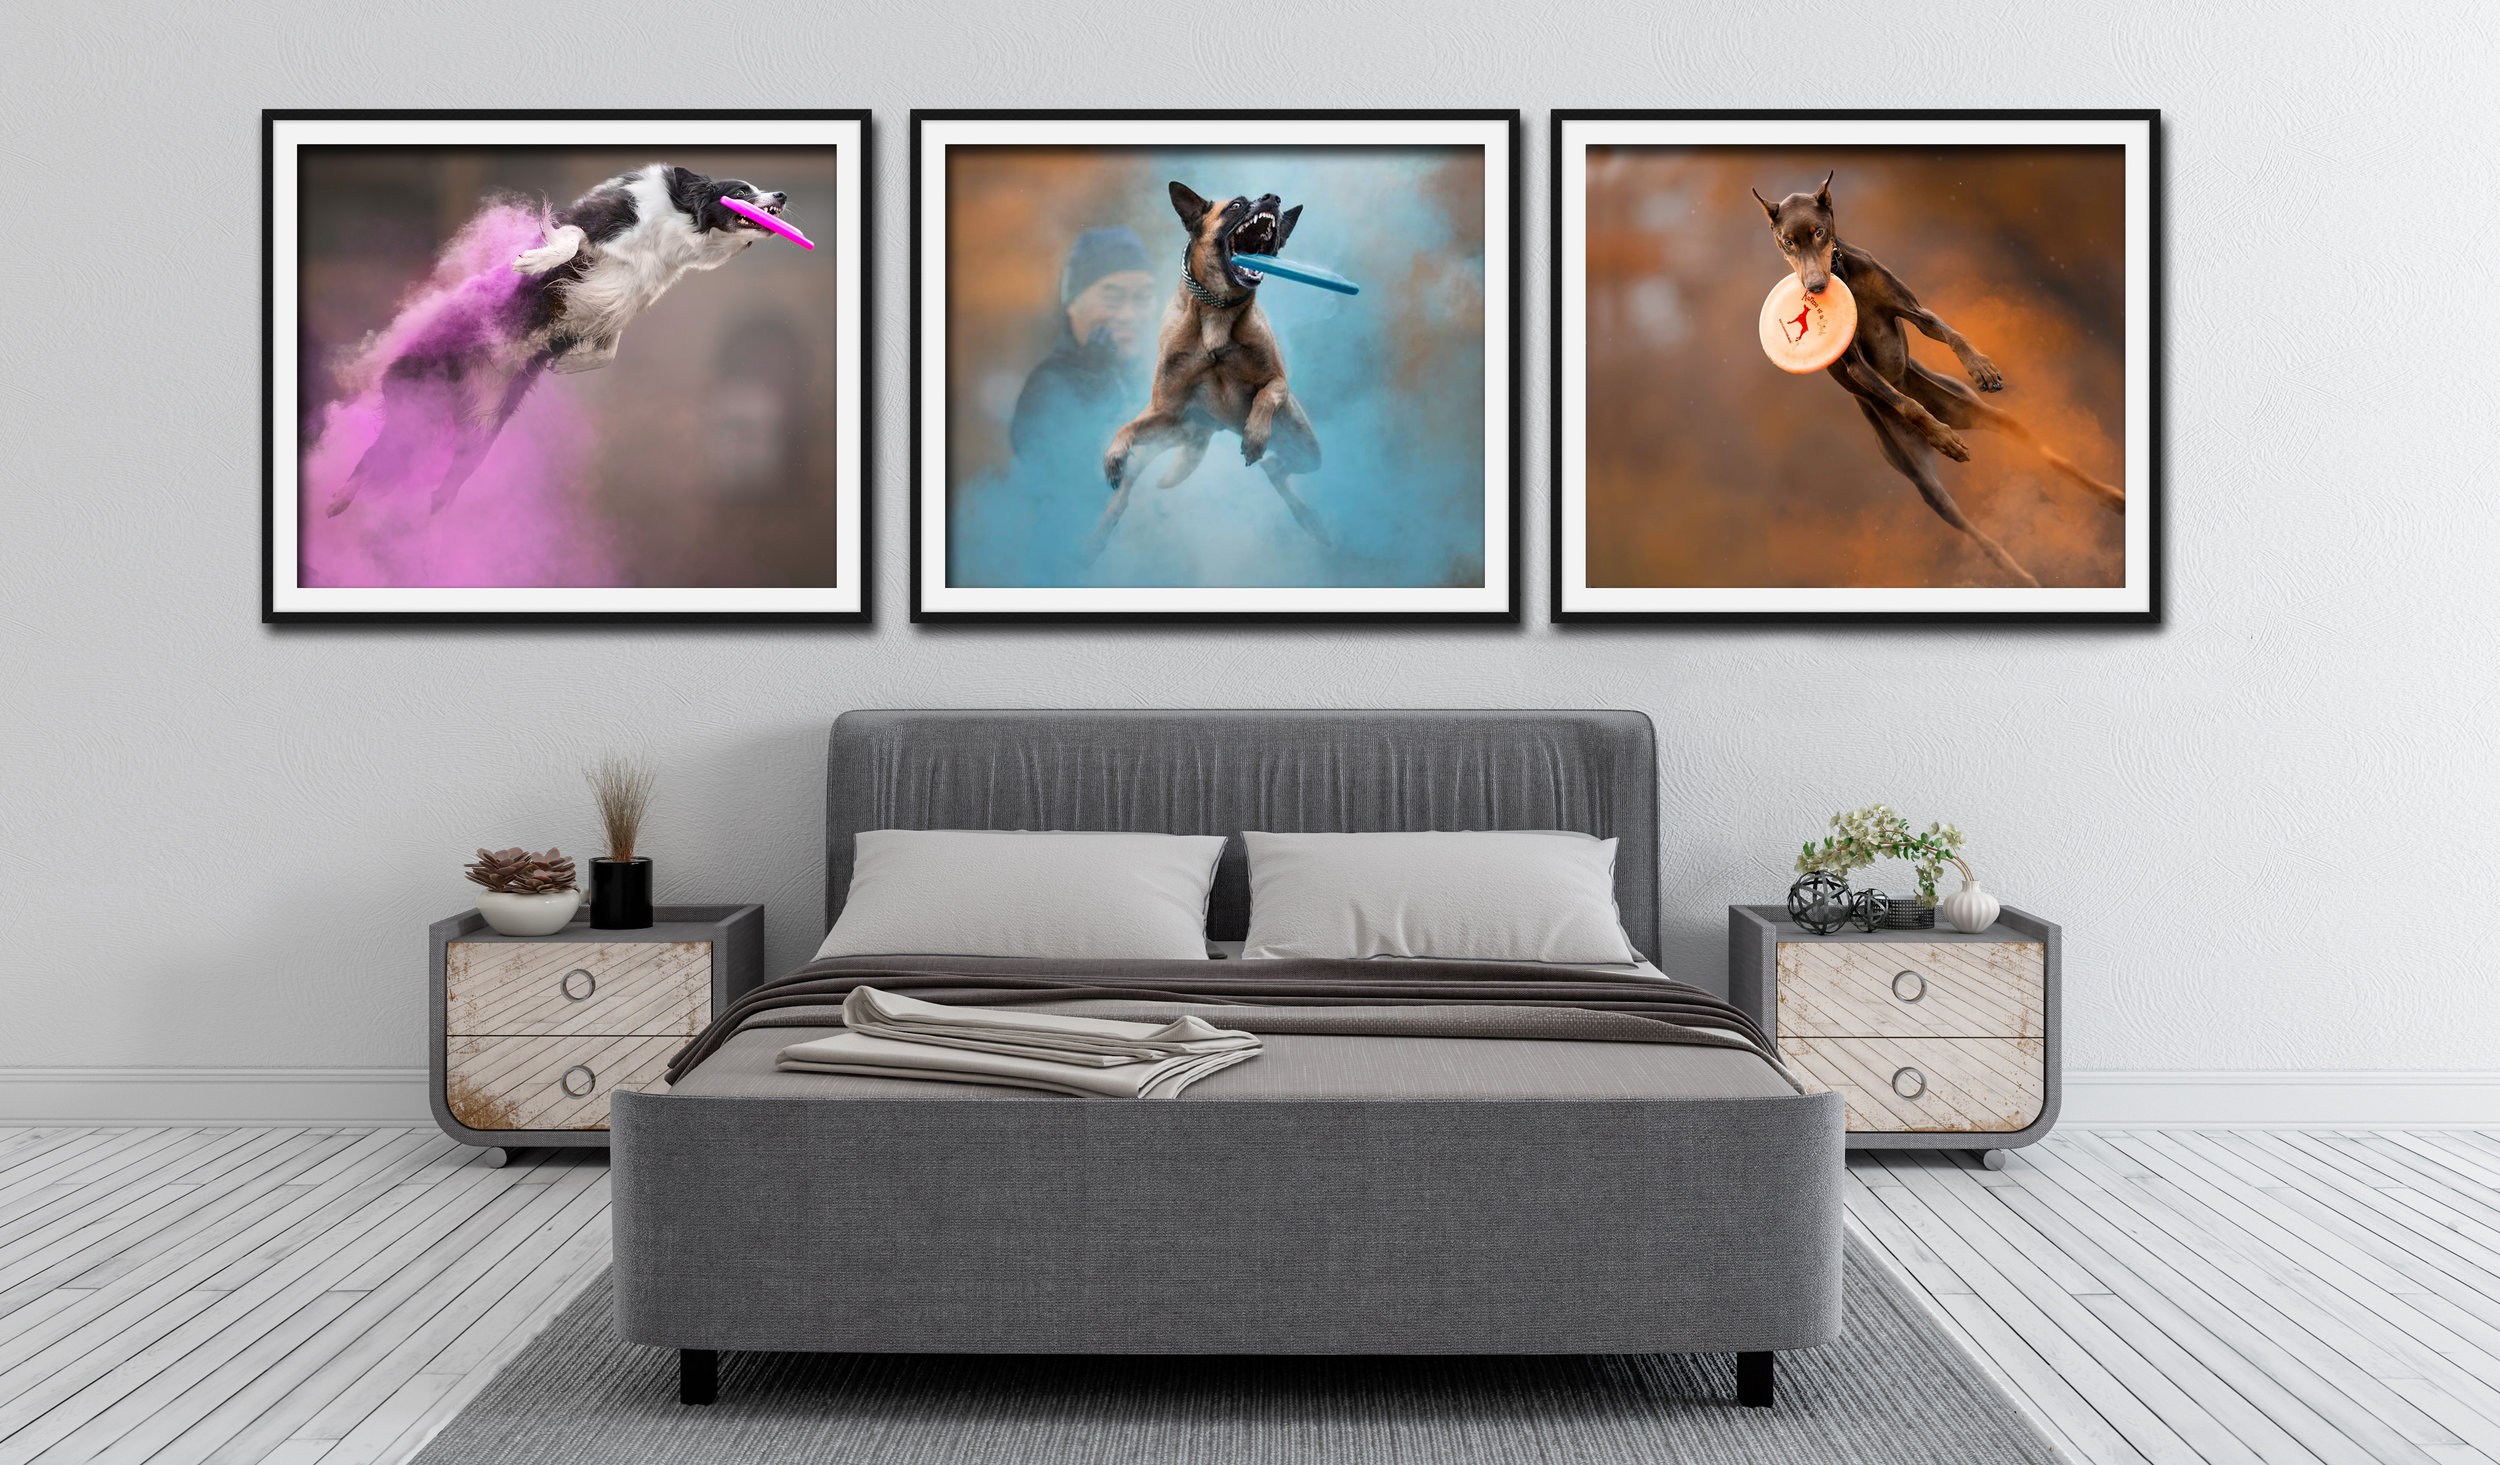 Jess Bell Photography - Artistic Animal Imagery - Toronto Pet Photographer - artwork